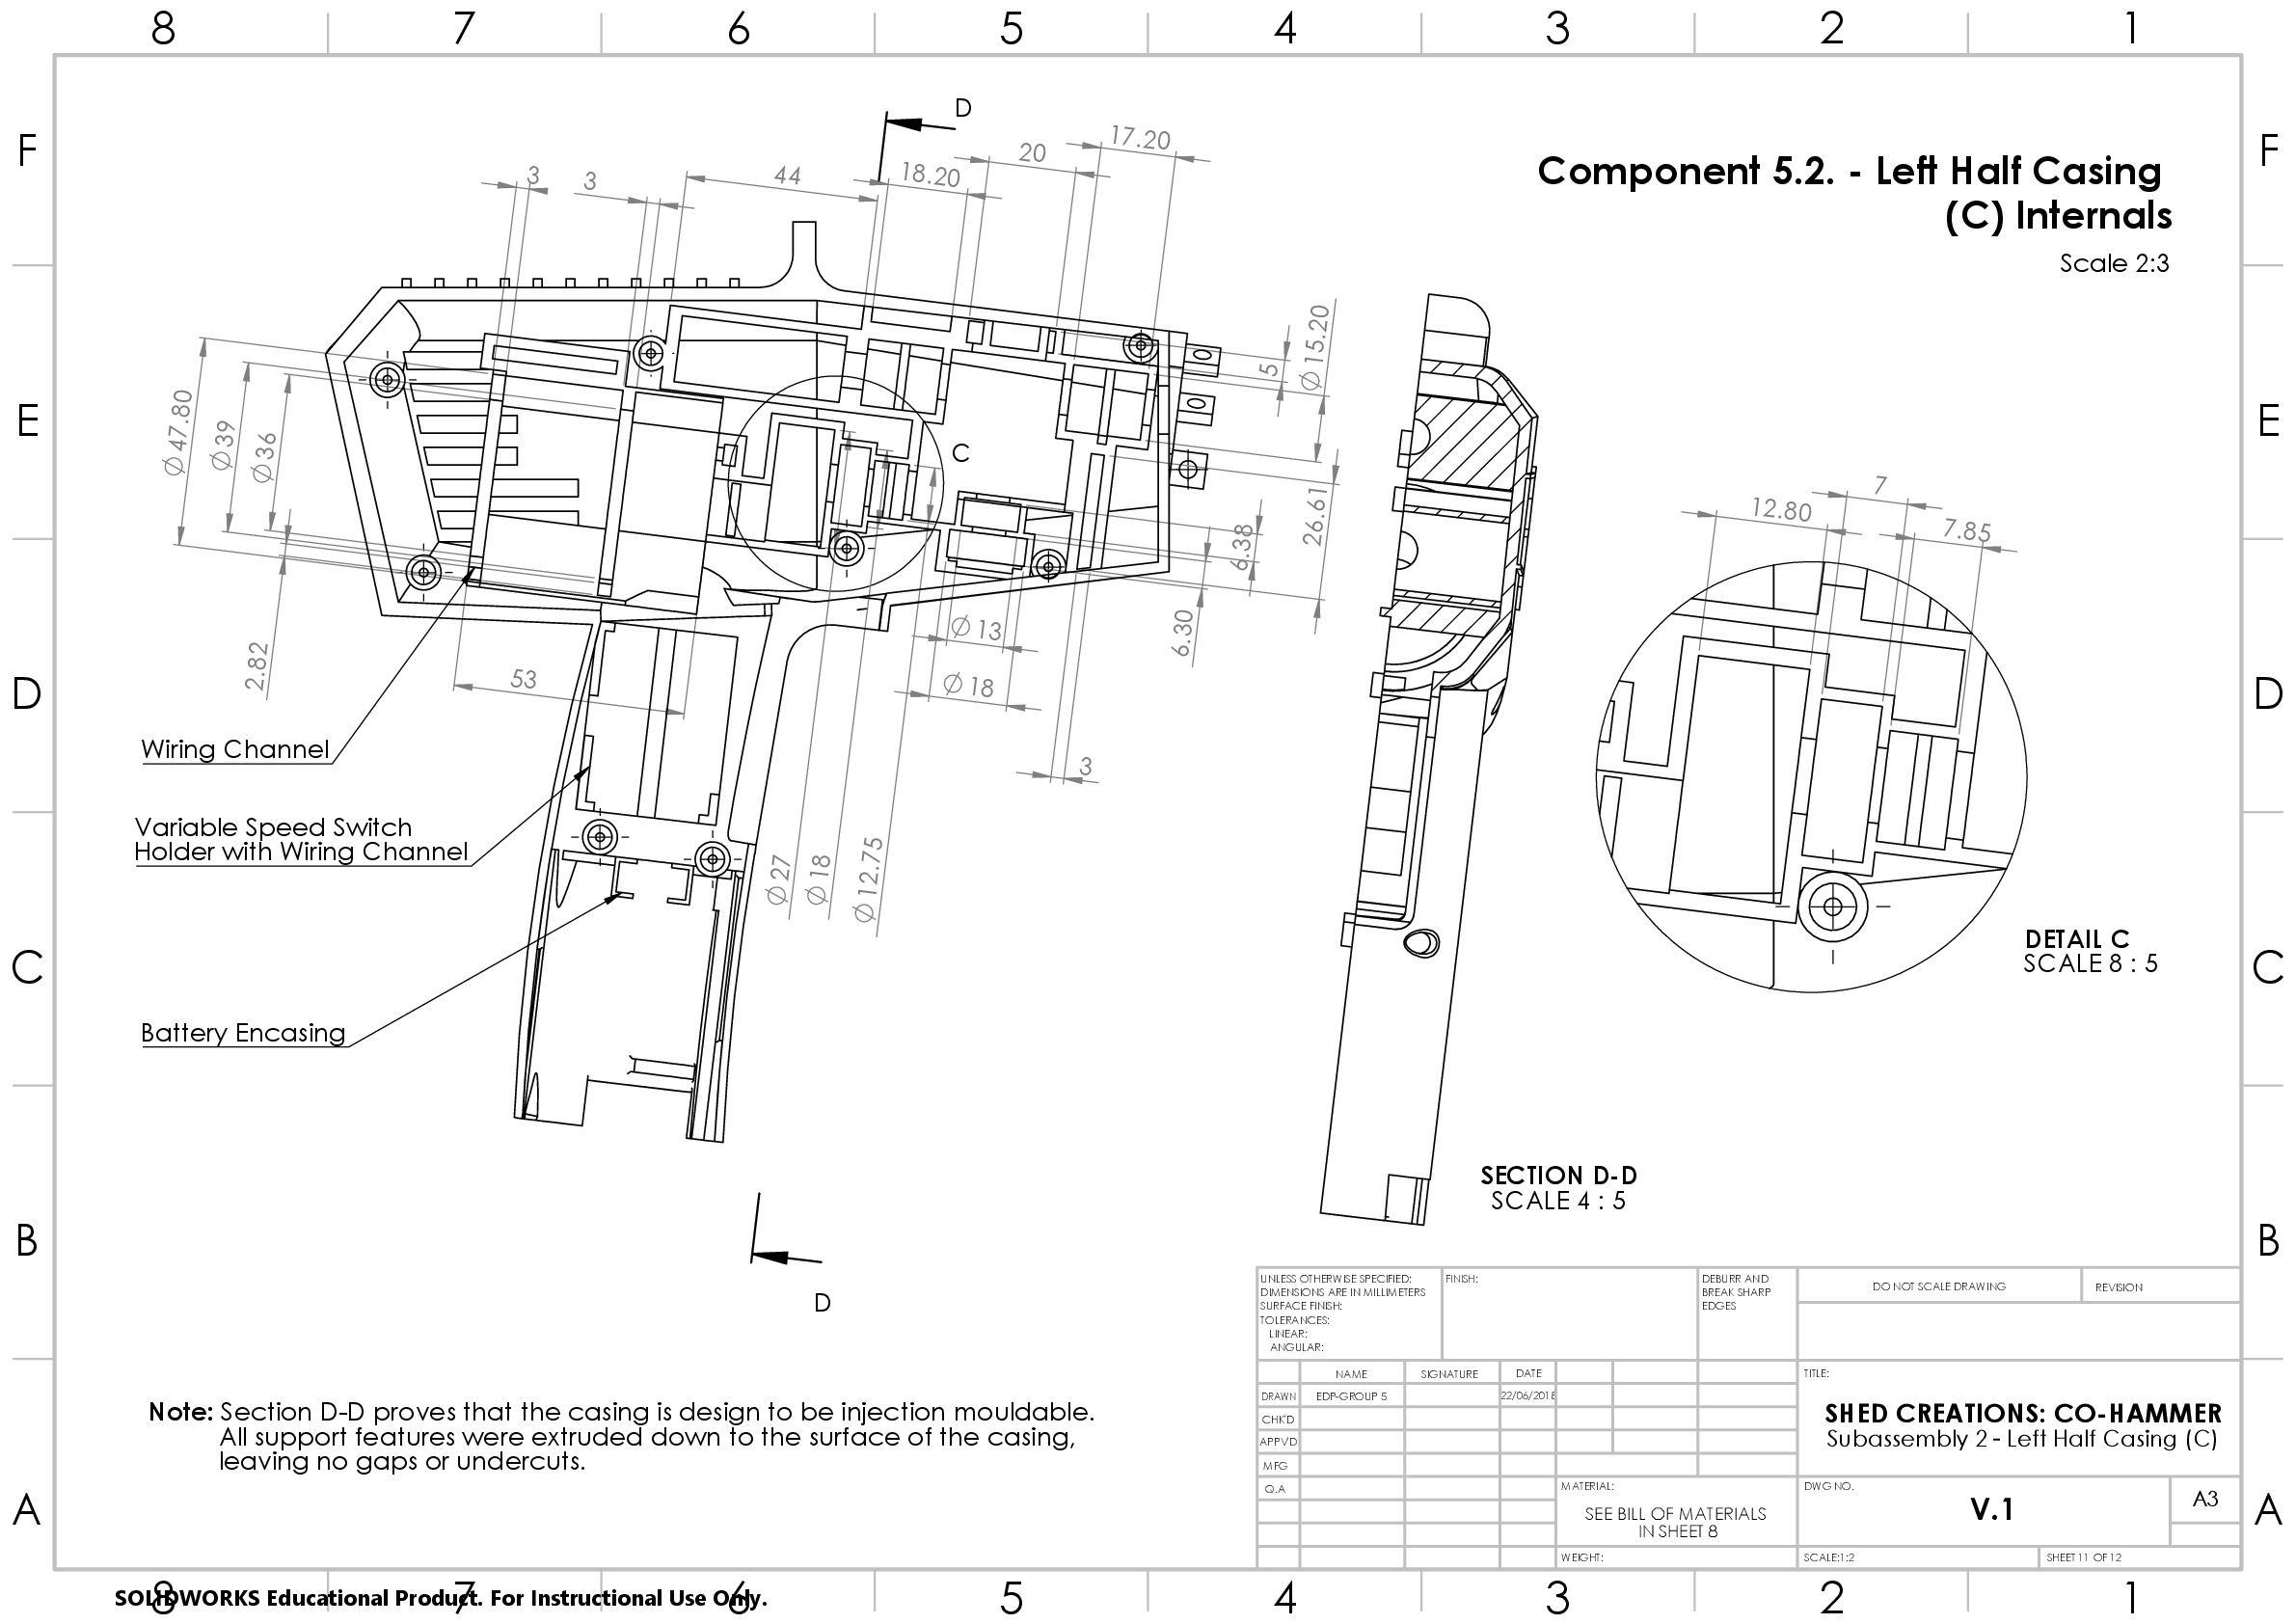 Co-Hammer---Technical-Drawings-Compresse